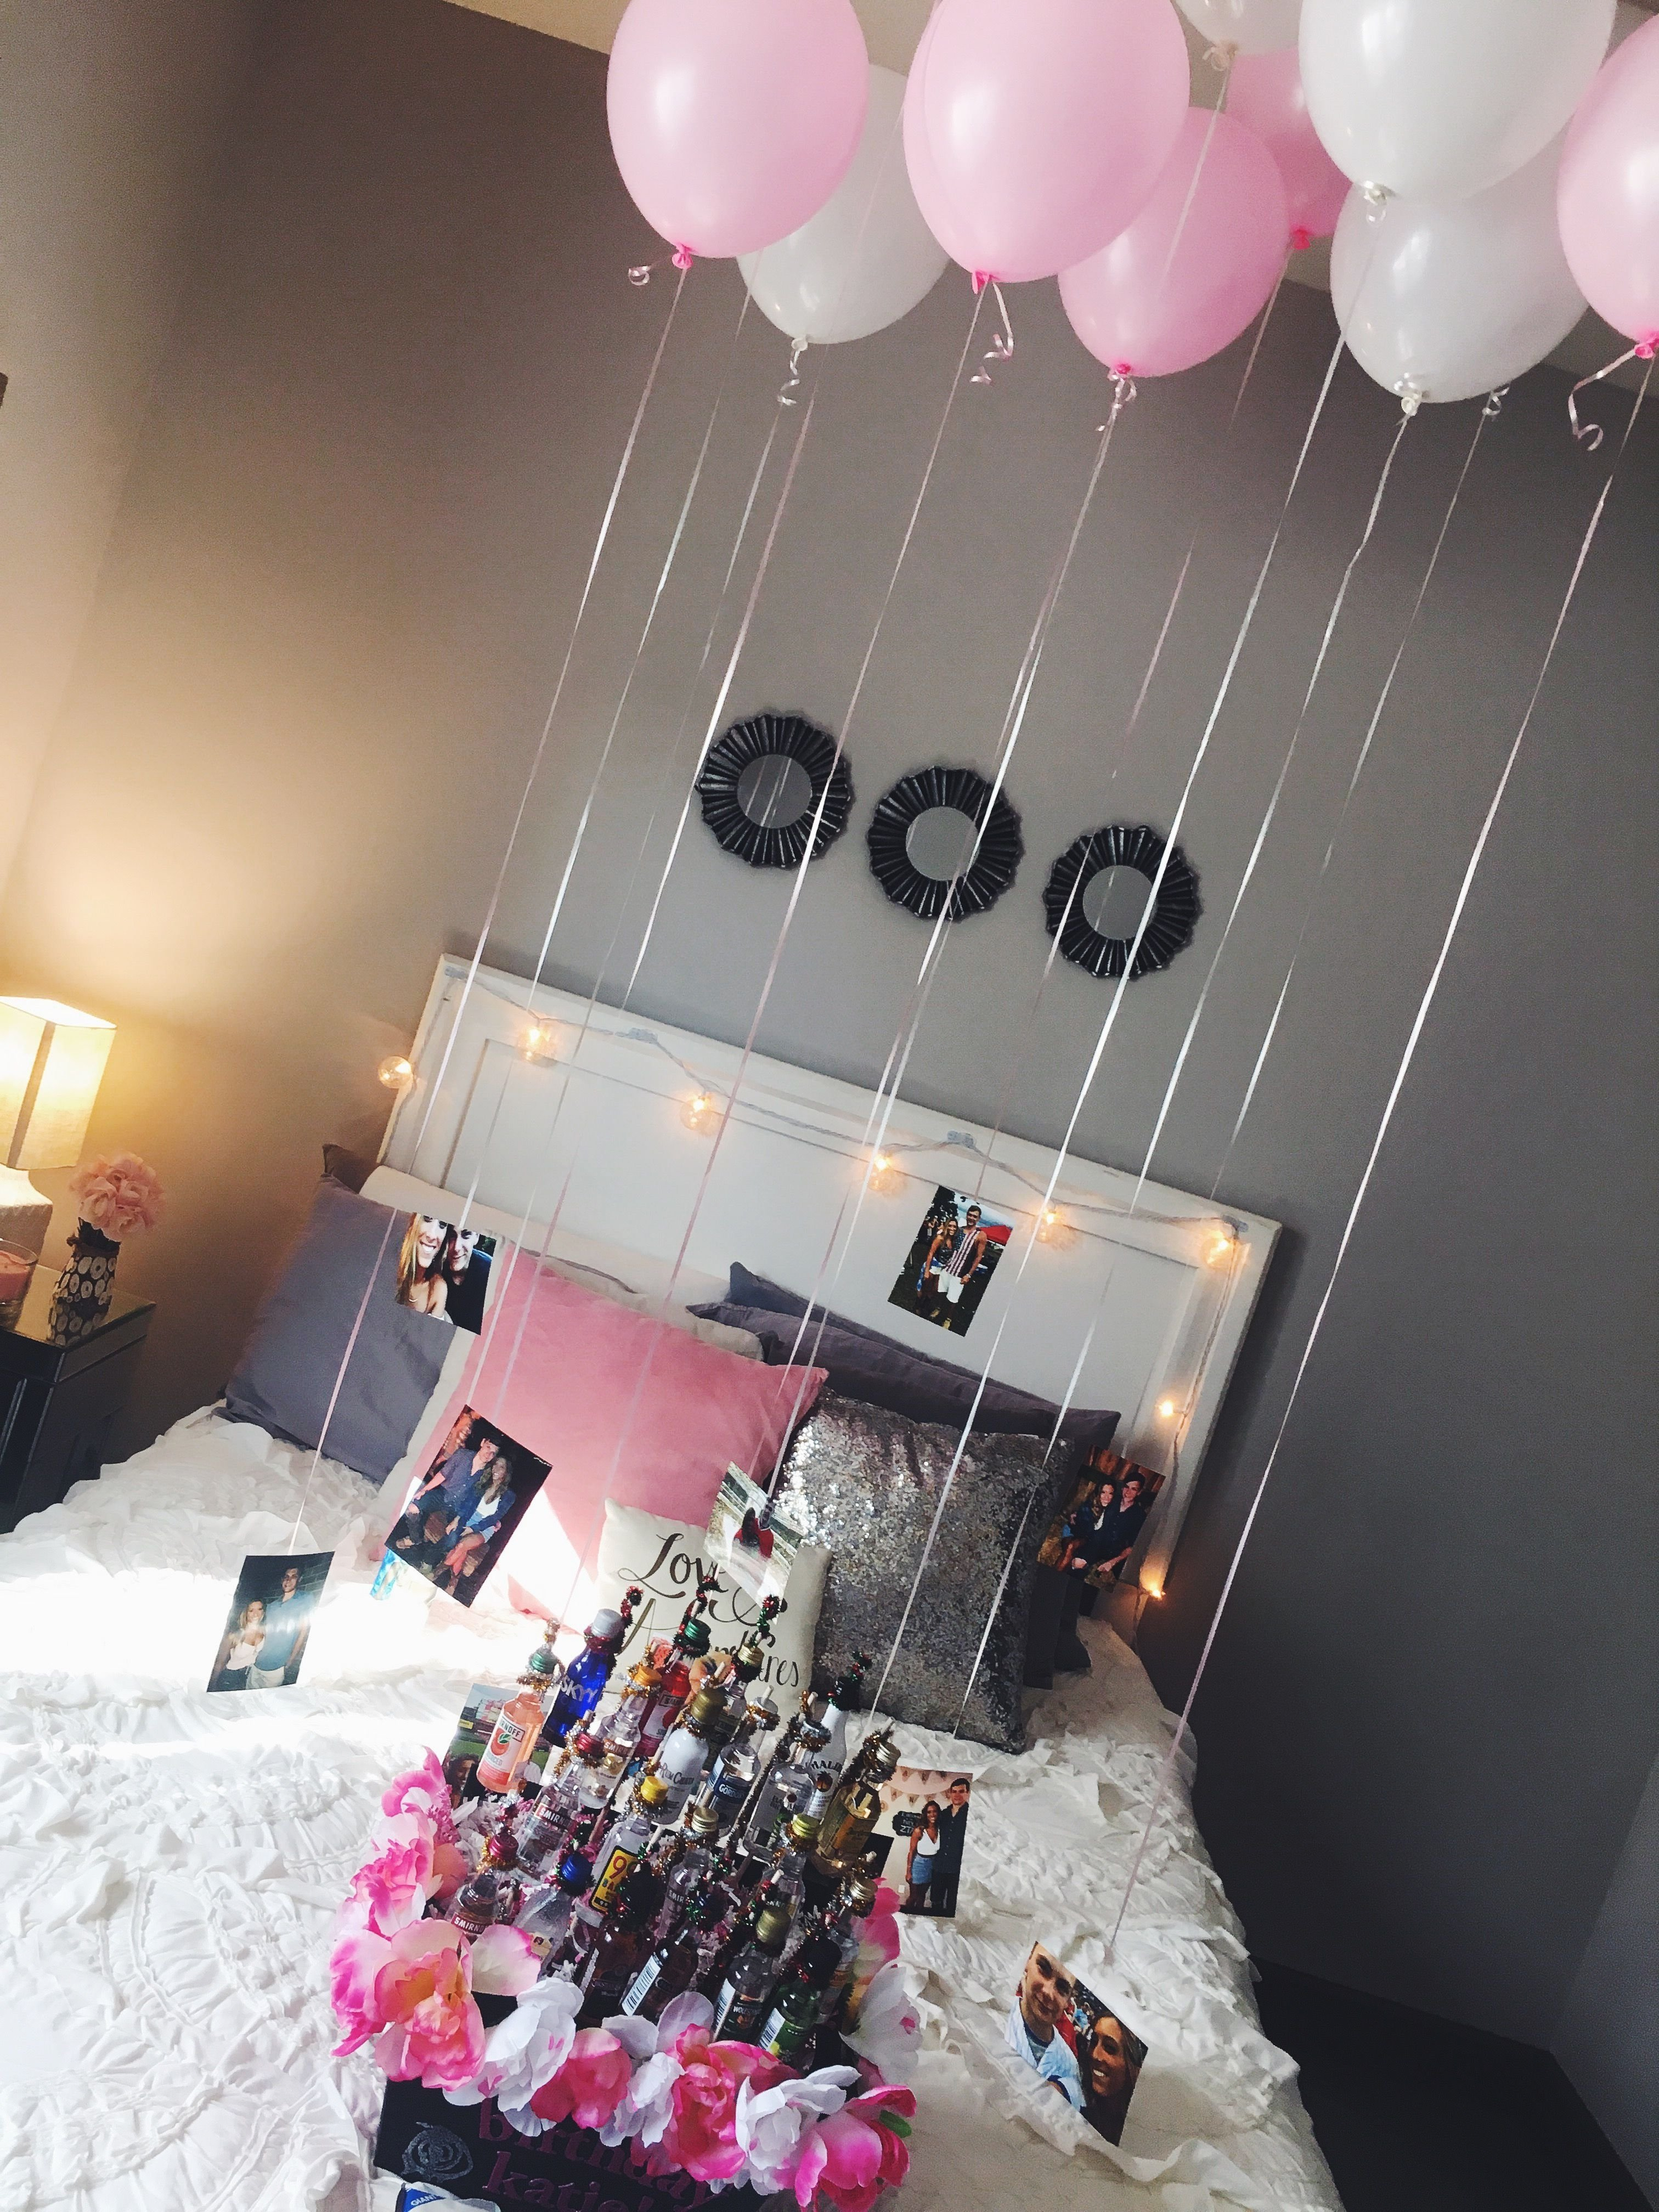 10 Lovable Cute Birthday Ideas For Girlfriend Easy And Decorations A Friend Or Girlfriends